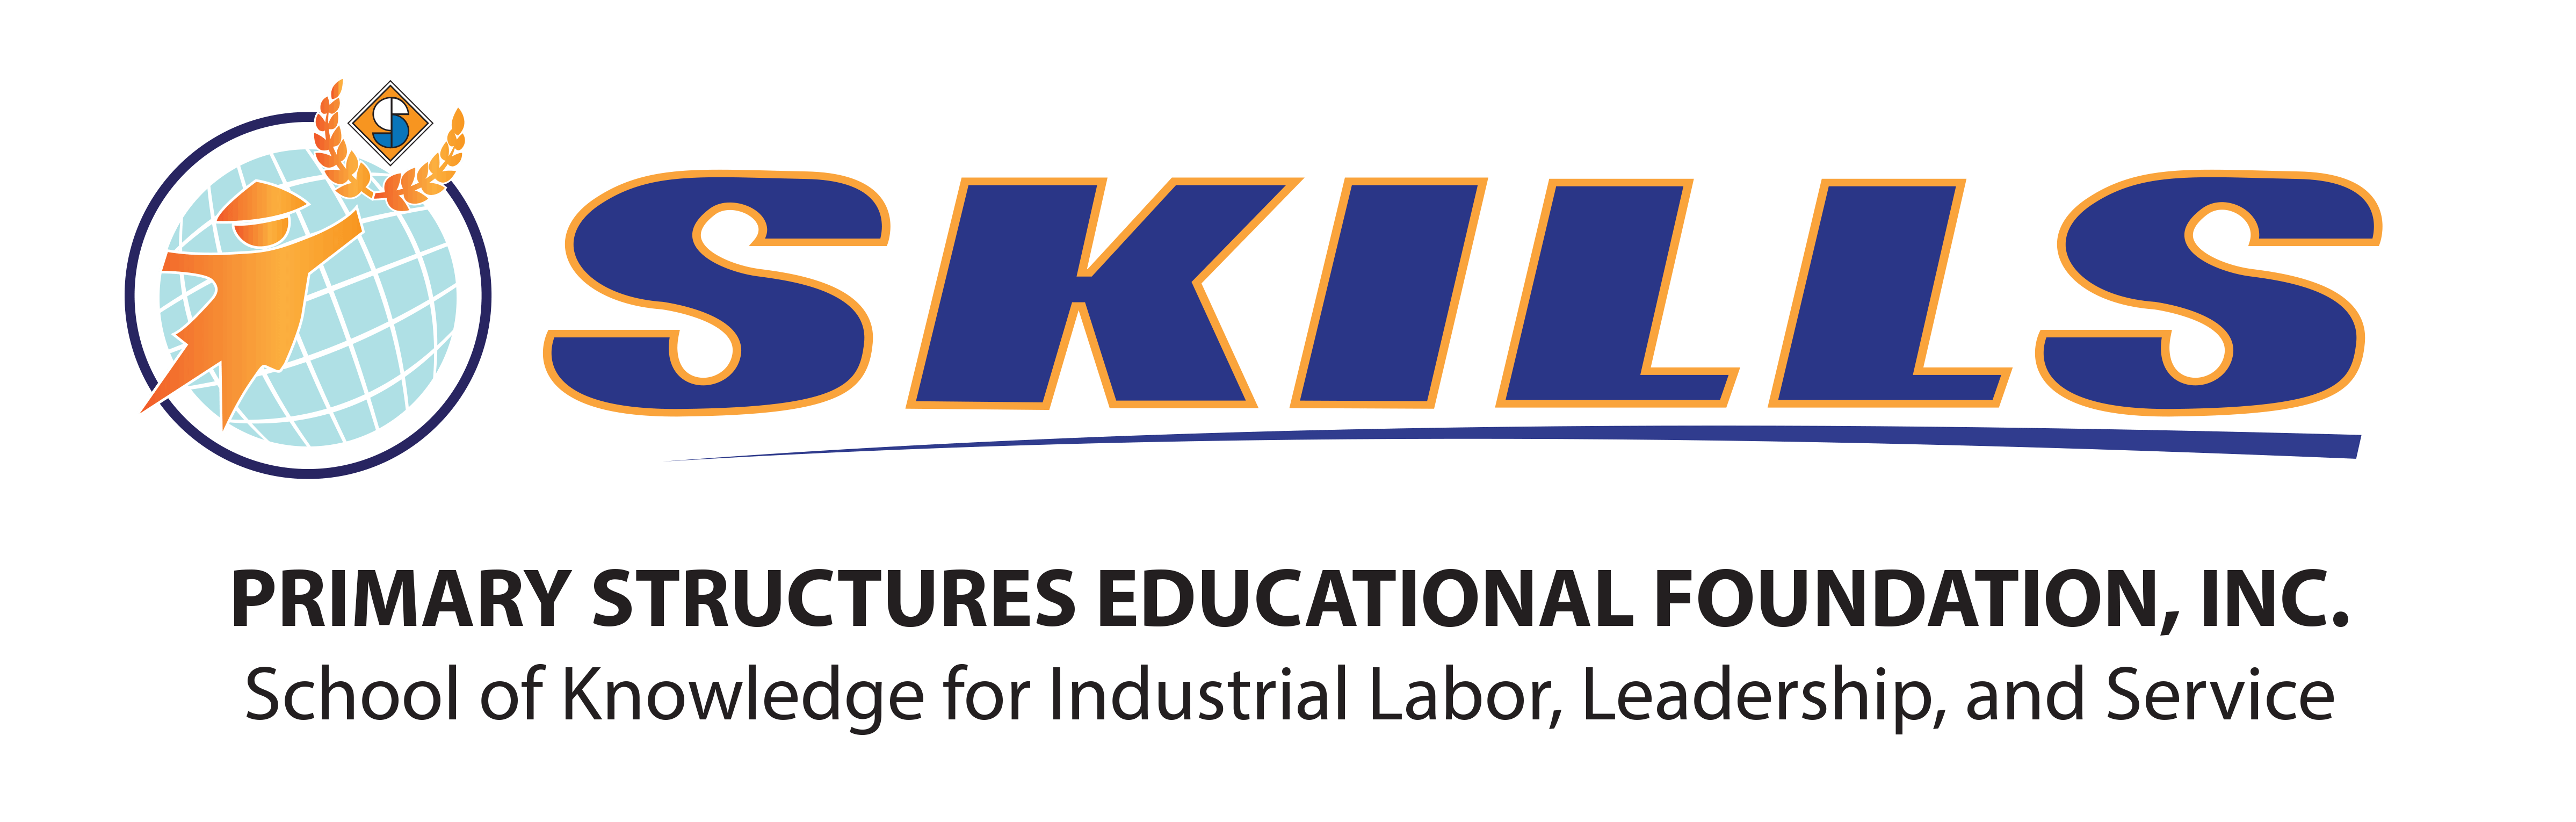 School of Knowledge for Industrial Labor, Leadership, and Service, Incorporated (SKILLS, Inc.) Logo